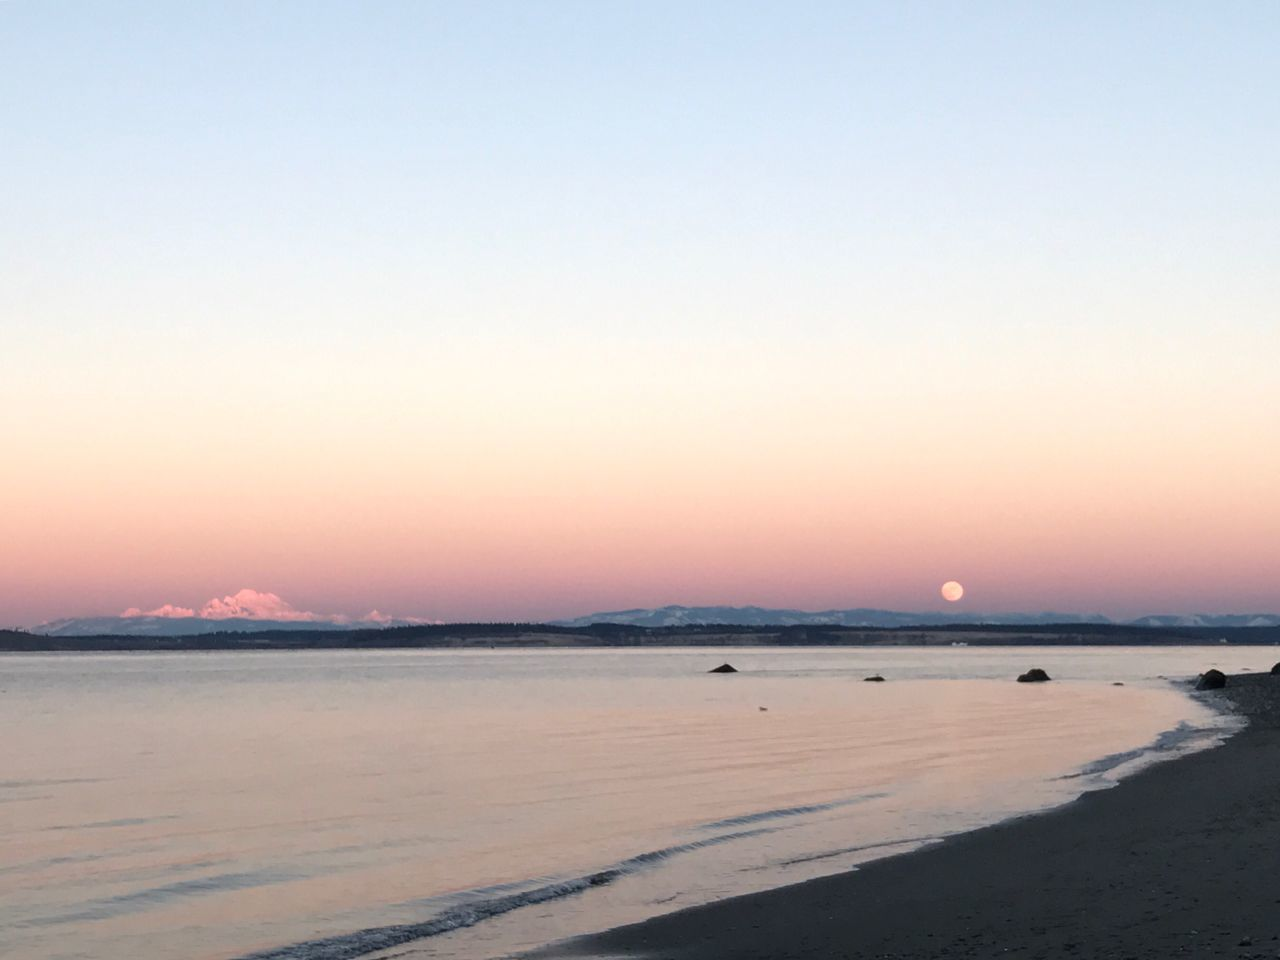 My Baker and the moon during sunset over the Salish Sea and I only had my iPhone! Sea Copy Space Nature Scenics Beauty In Nature Water Beach Clear Sky Sunset Tranquility Outdoors Tranquil Scene No People Sky Day IPhoneography EyeEm Best Shots EyeEm Gallery Beauty In Nature Salish Sea Washington State Mt. Baker Millennial Pink